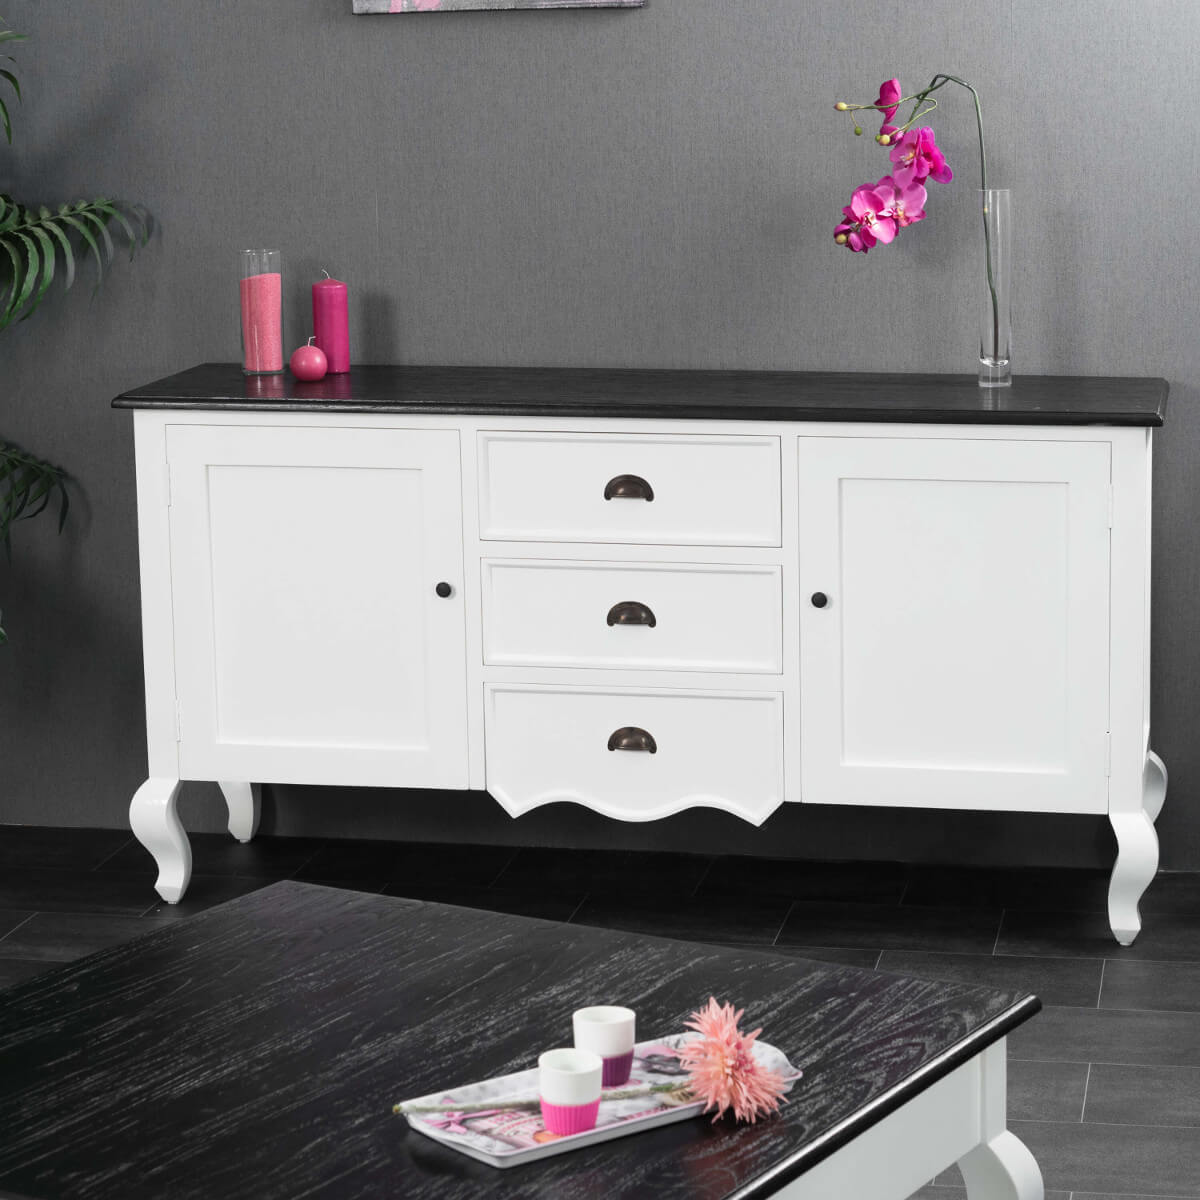 Buffet de salon en bois d 39 acajou et de pin massif idao rectangle blanc naturel l 160 cm - Buffet pour salon ...